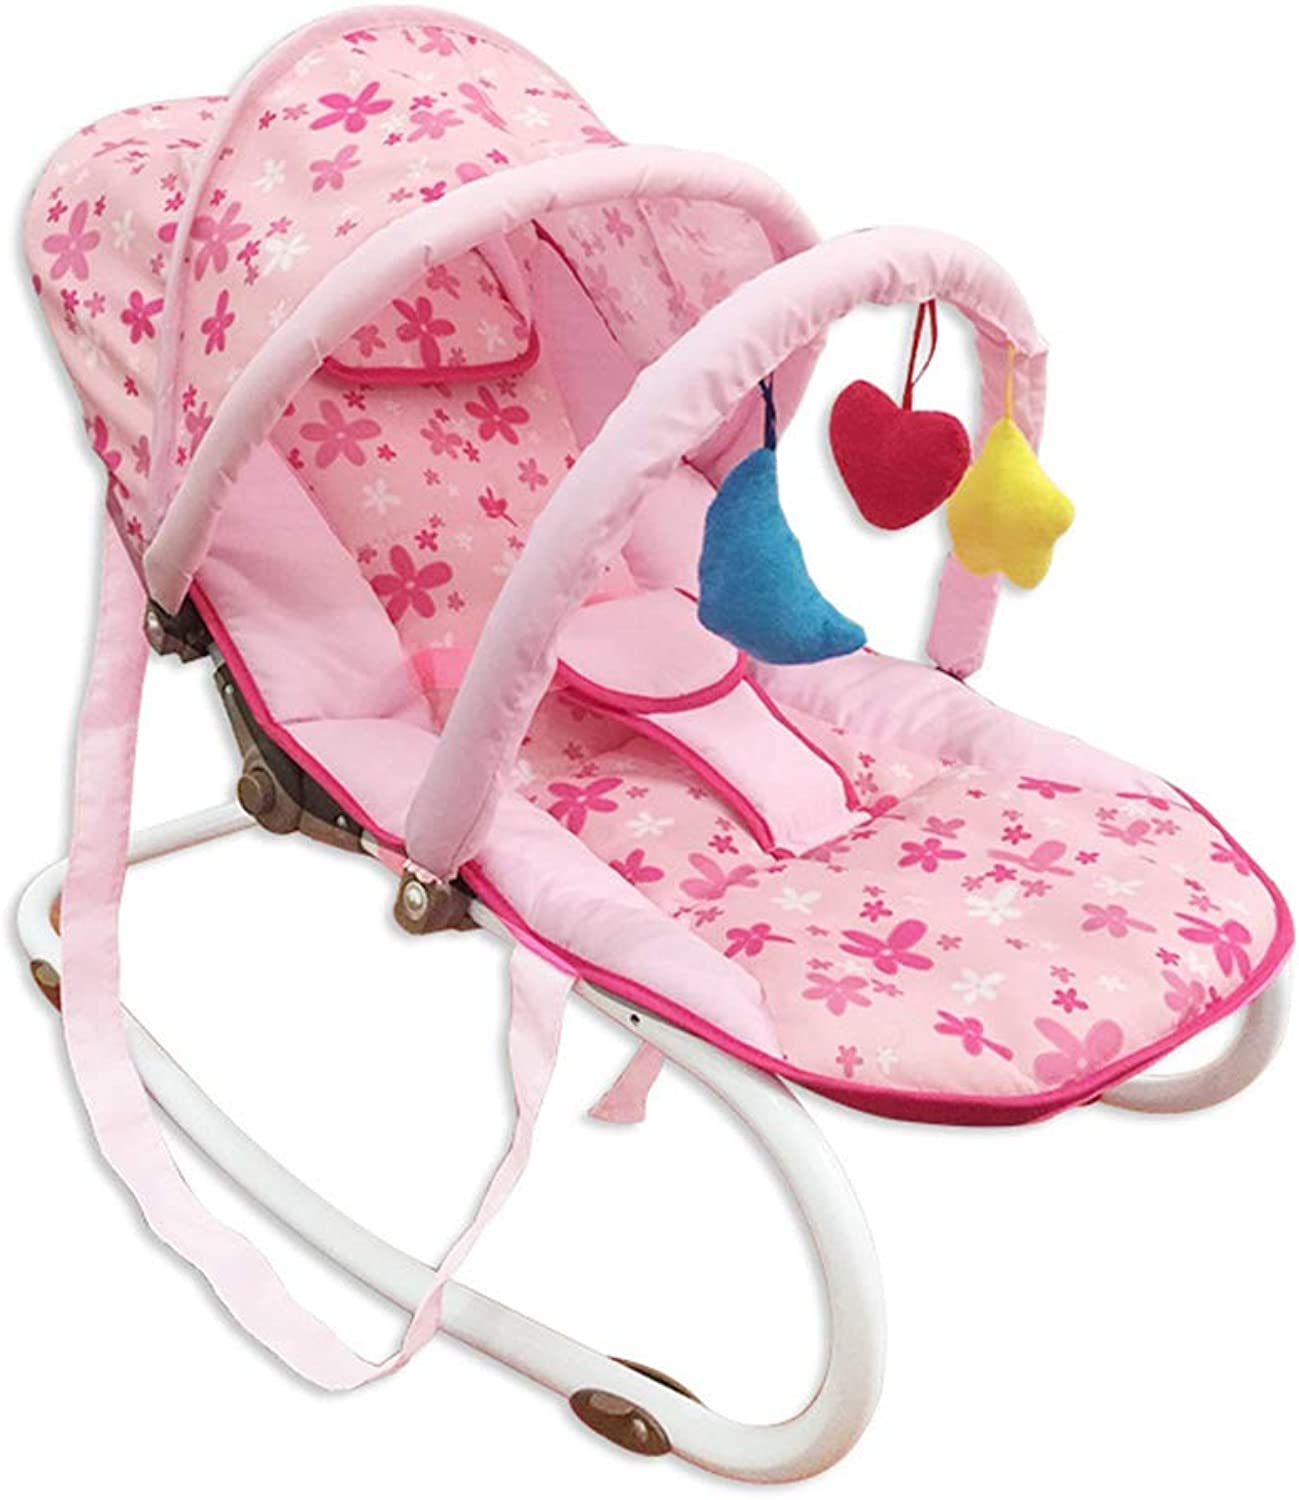 Parenting Cradle Chair Loungers and Feeding Seat, Toddler Coax Sleeping Artifact Feeding Chair Entertainment Chair Music with 180 Degree Adjustment, Small Cradle Newborn Rocking Chair